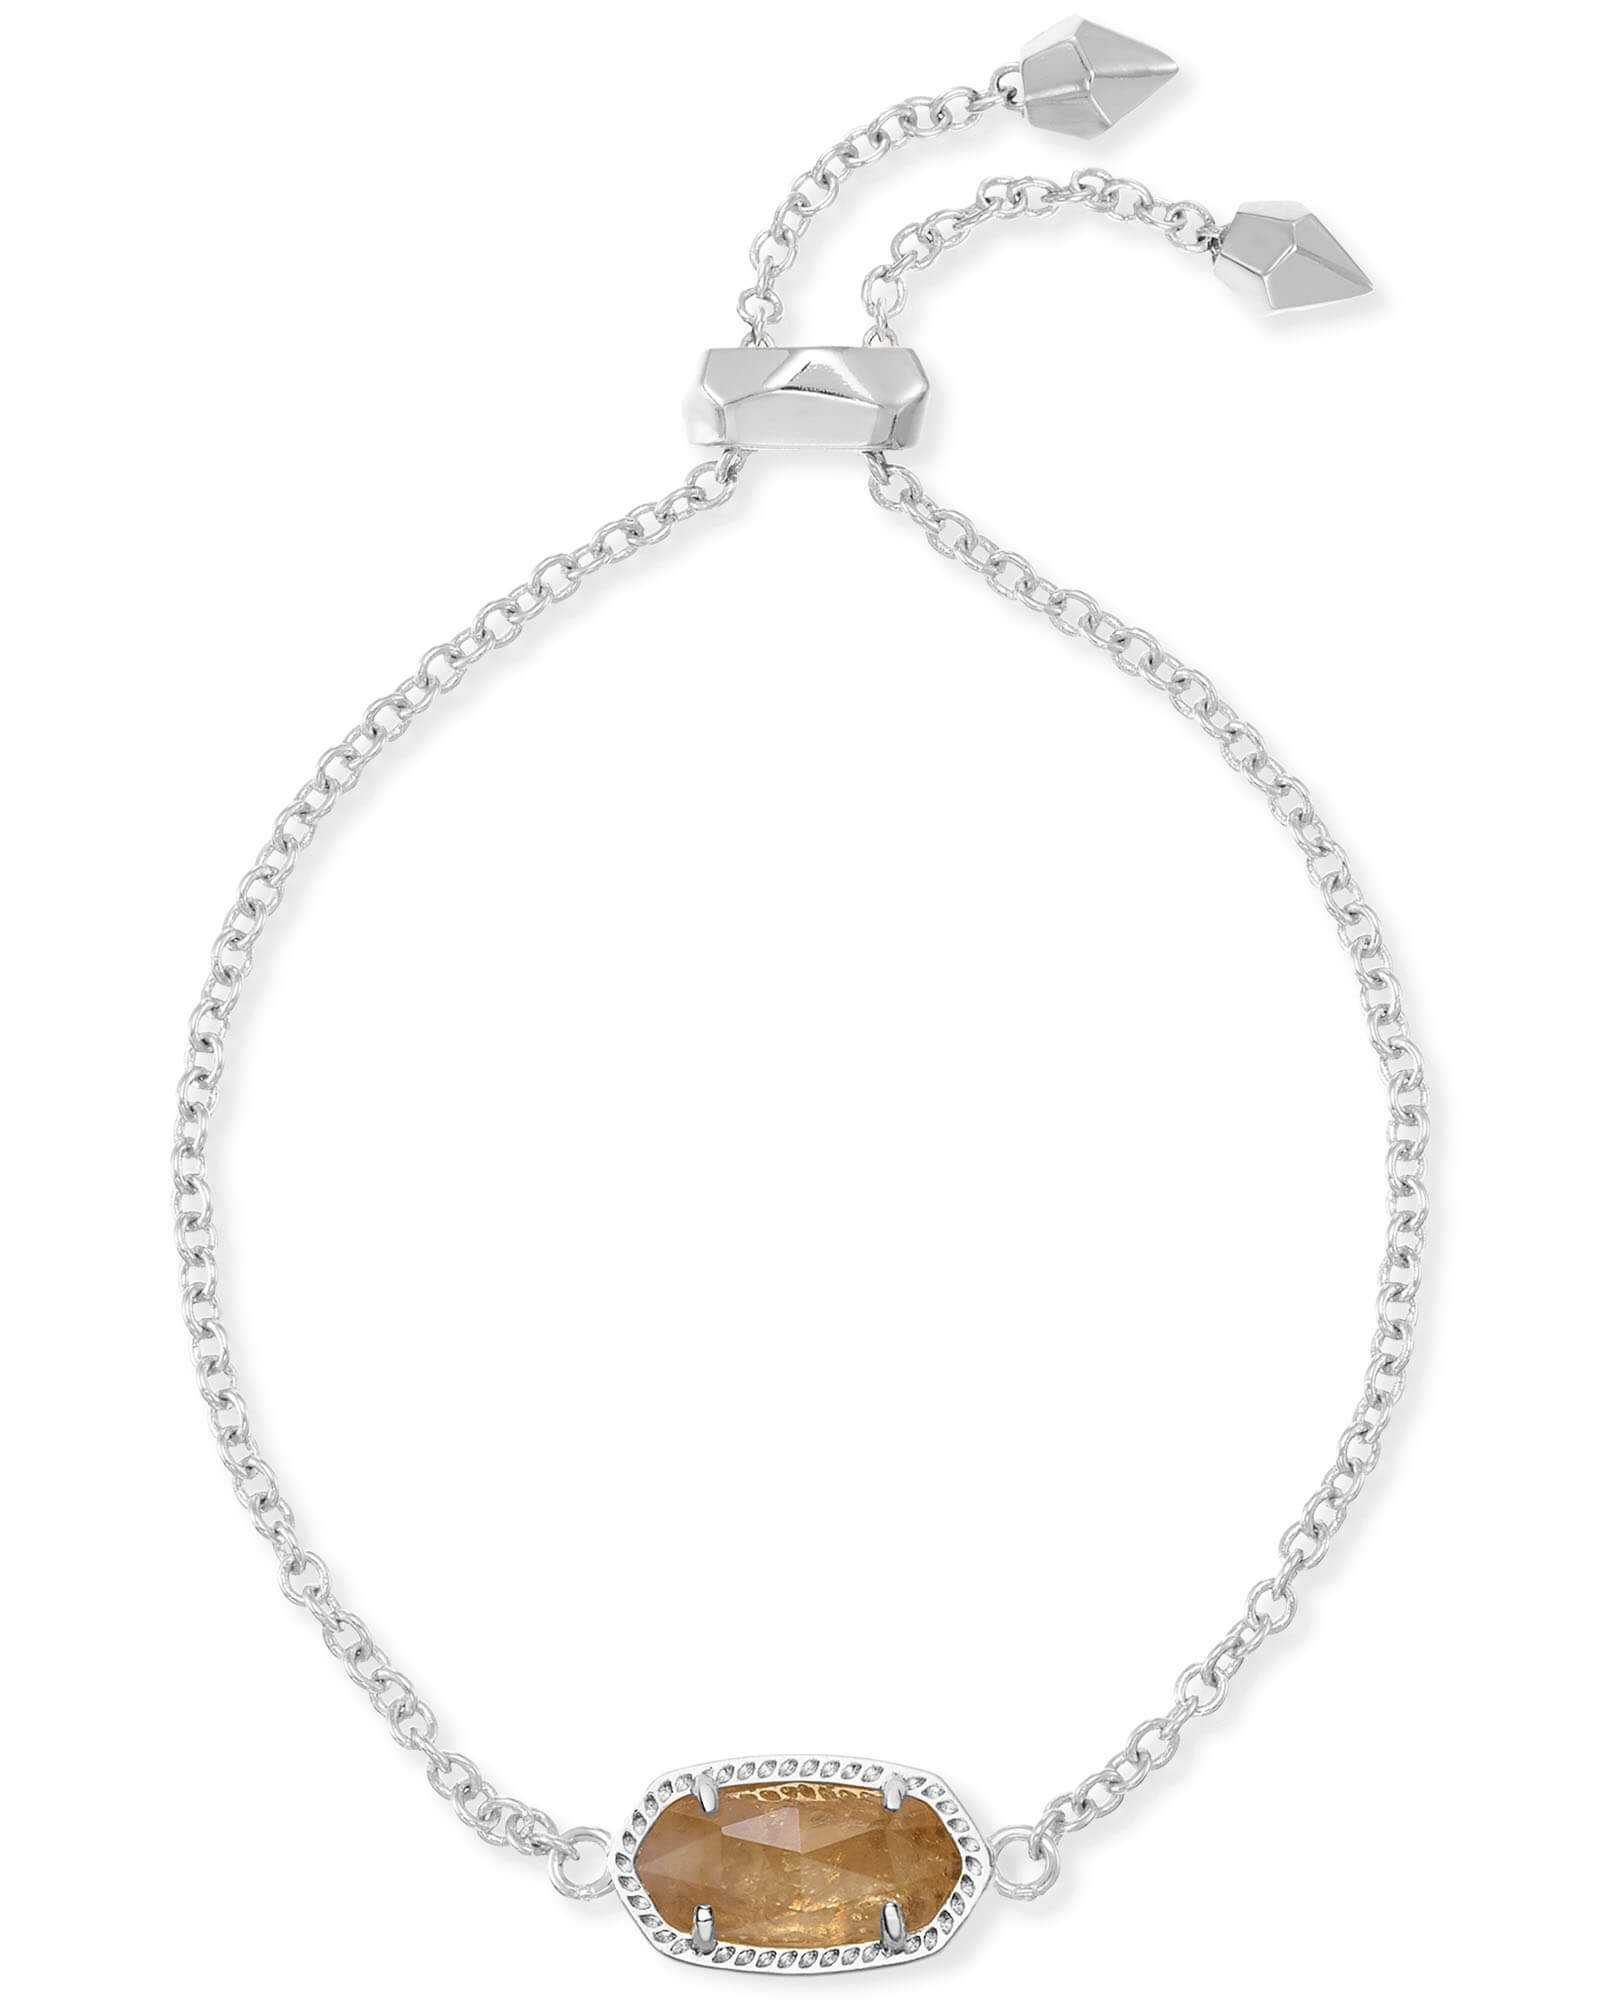 Elaina Silver Adjustable Chain Bracelet in Citrine